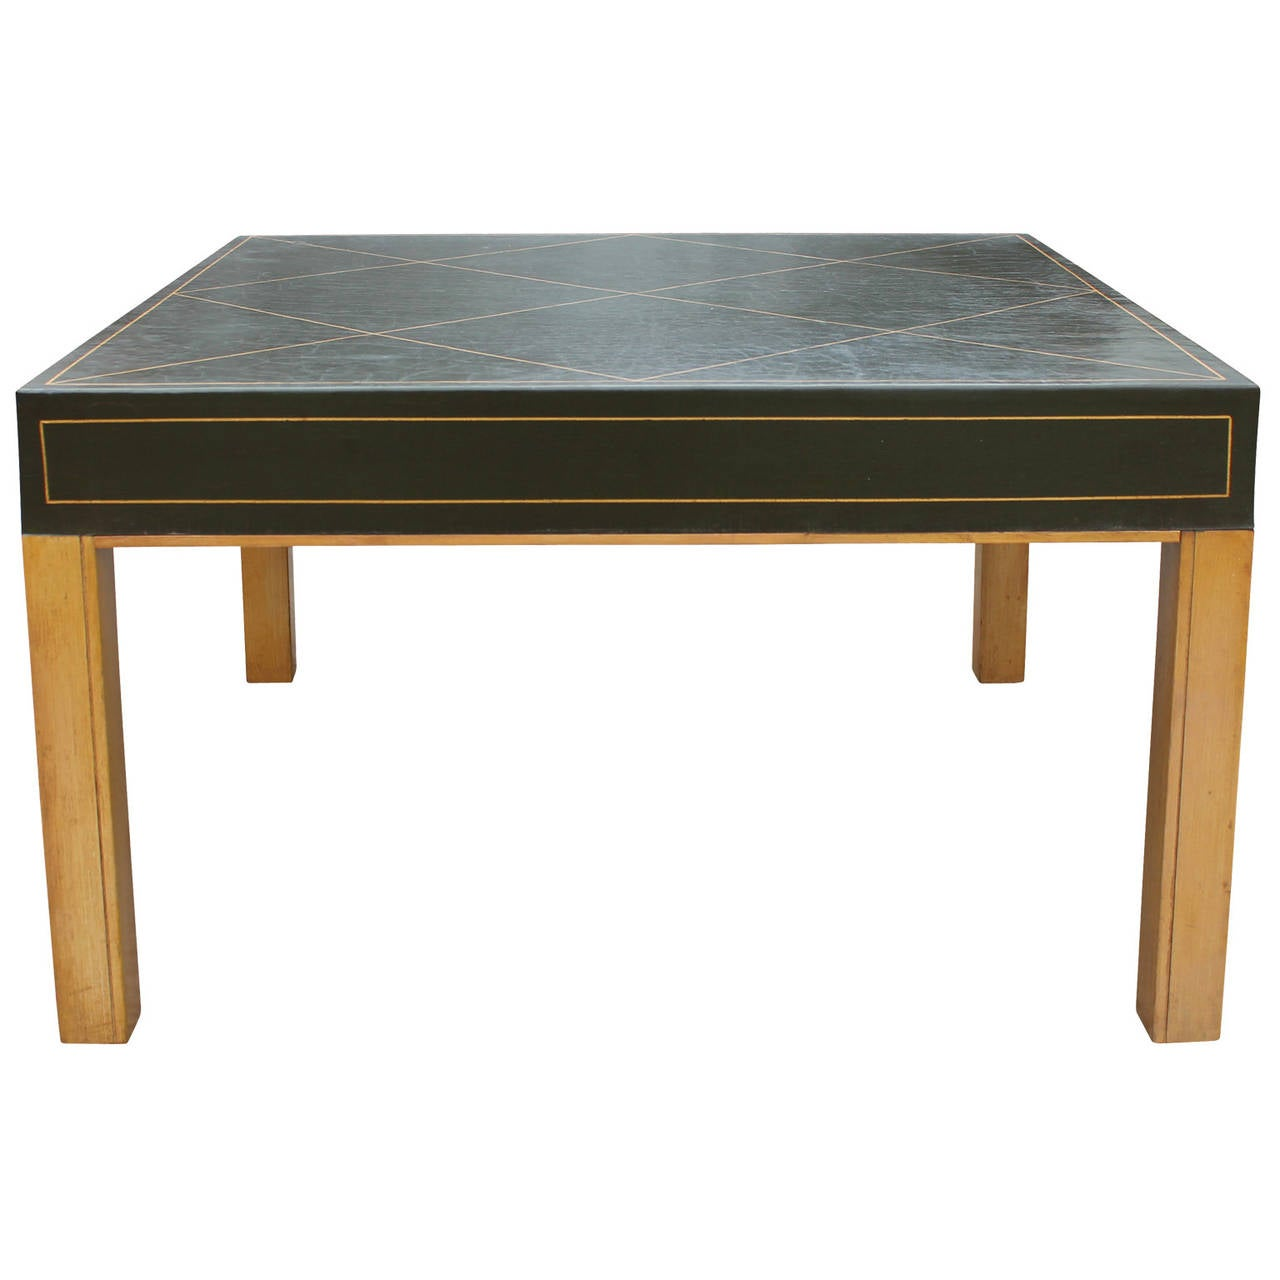 Green Leather Tommi Parzinger Style Coffee Table For Sale At 1stdibs